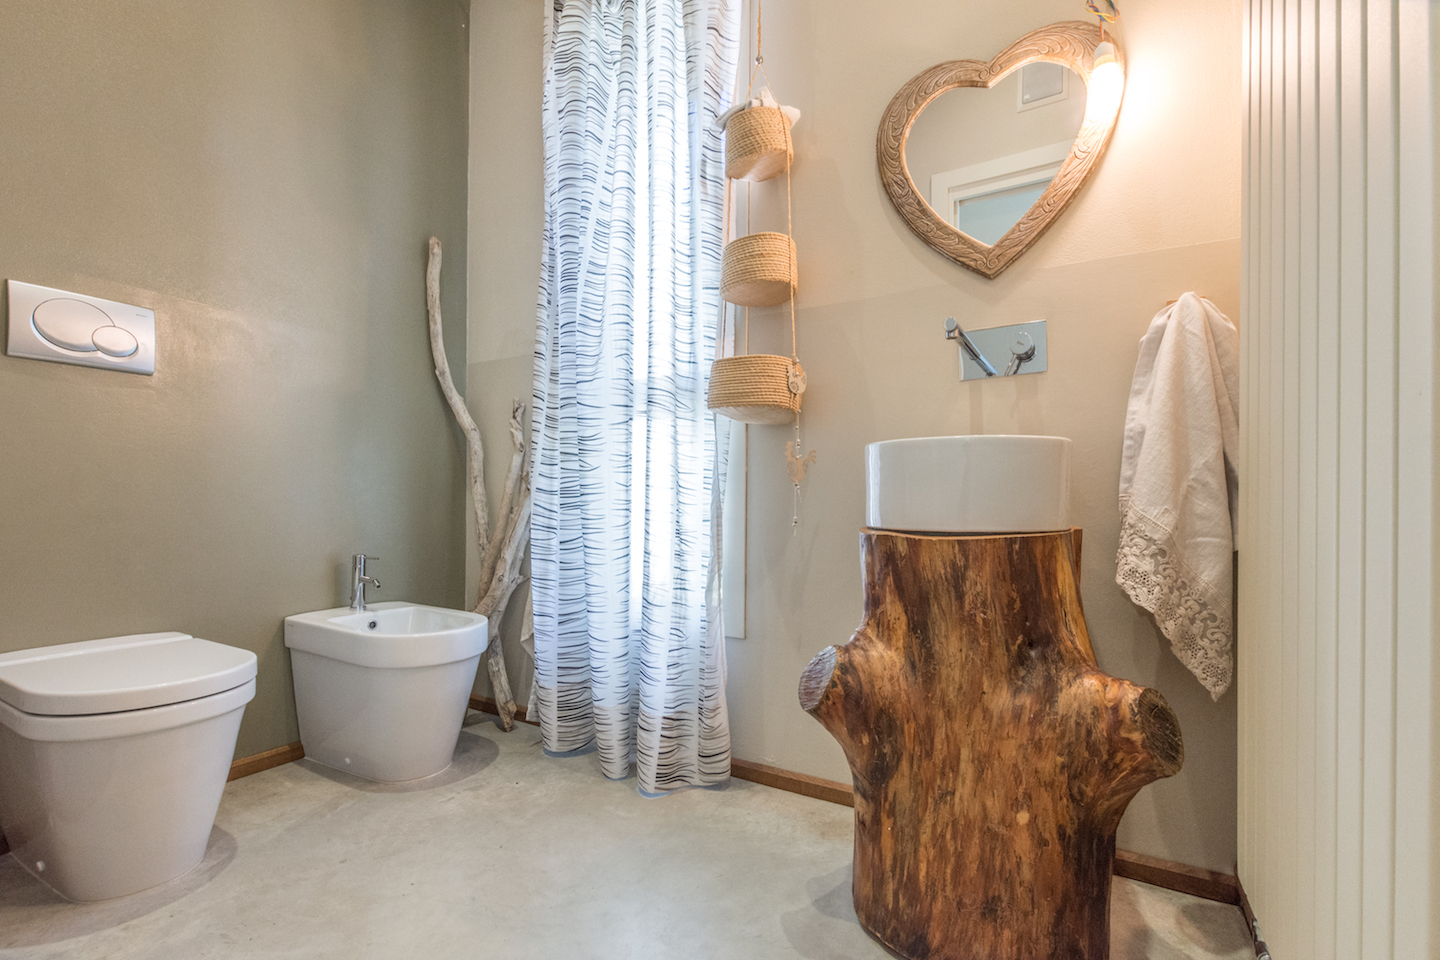 LEGNO WOOD TRONCO bagno bathroom diy faidate riciclo recupero homestaging mirna casadei interiors real estate home vendo casa annunci immobiliare-8321.jpg